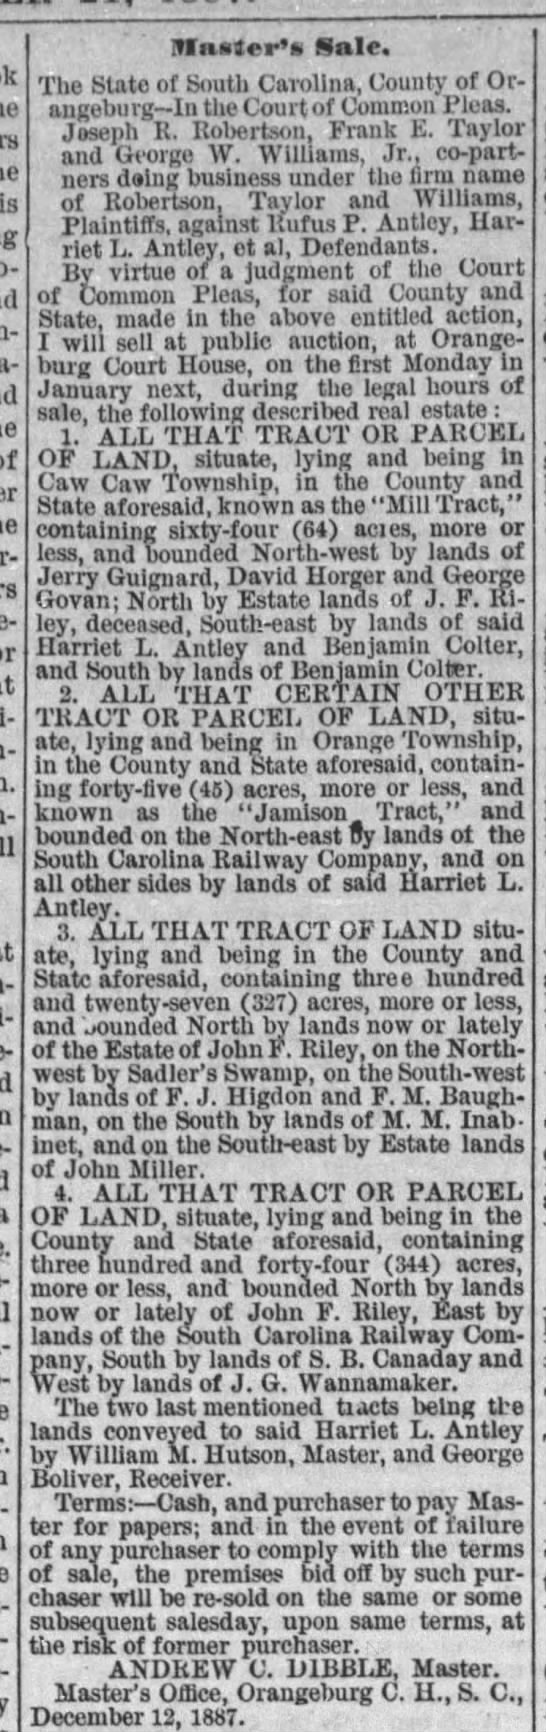 """Master's Sale,"" Times and Democrat [Orangeburg, SC] (21 Dec 1887); p. 4, col. 5 - of Master's) Sale. The State of South Carolina,..."